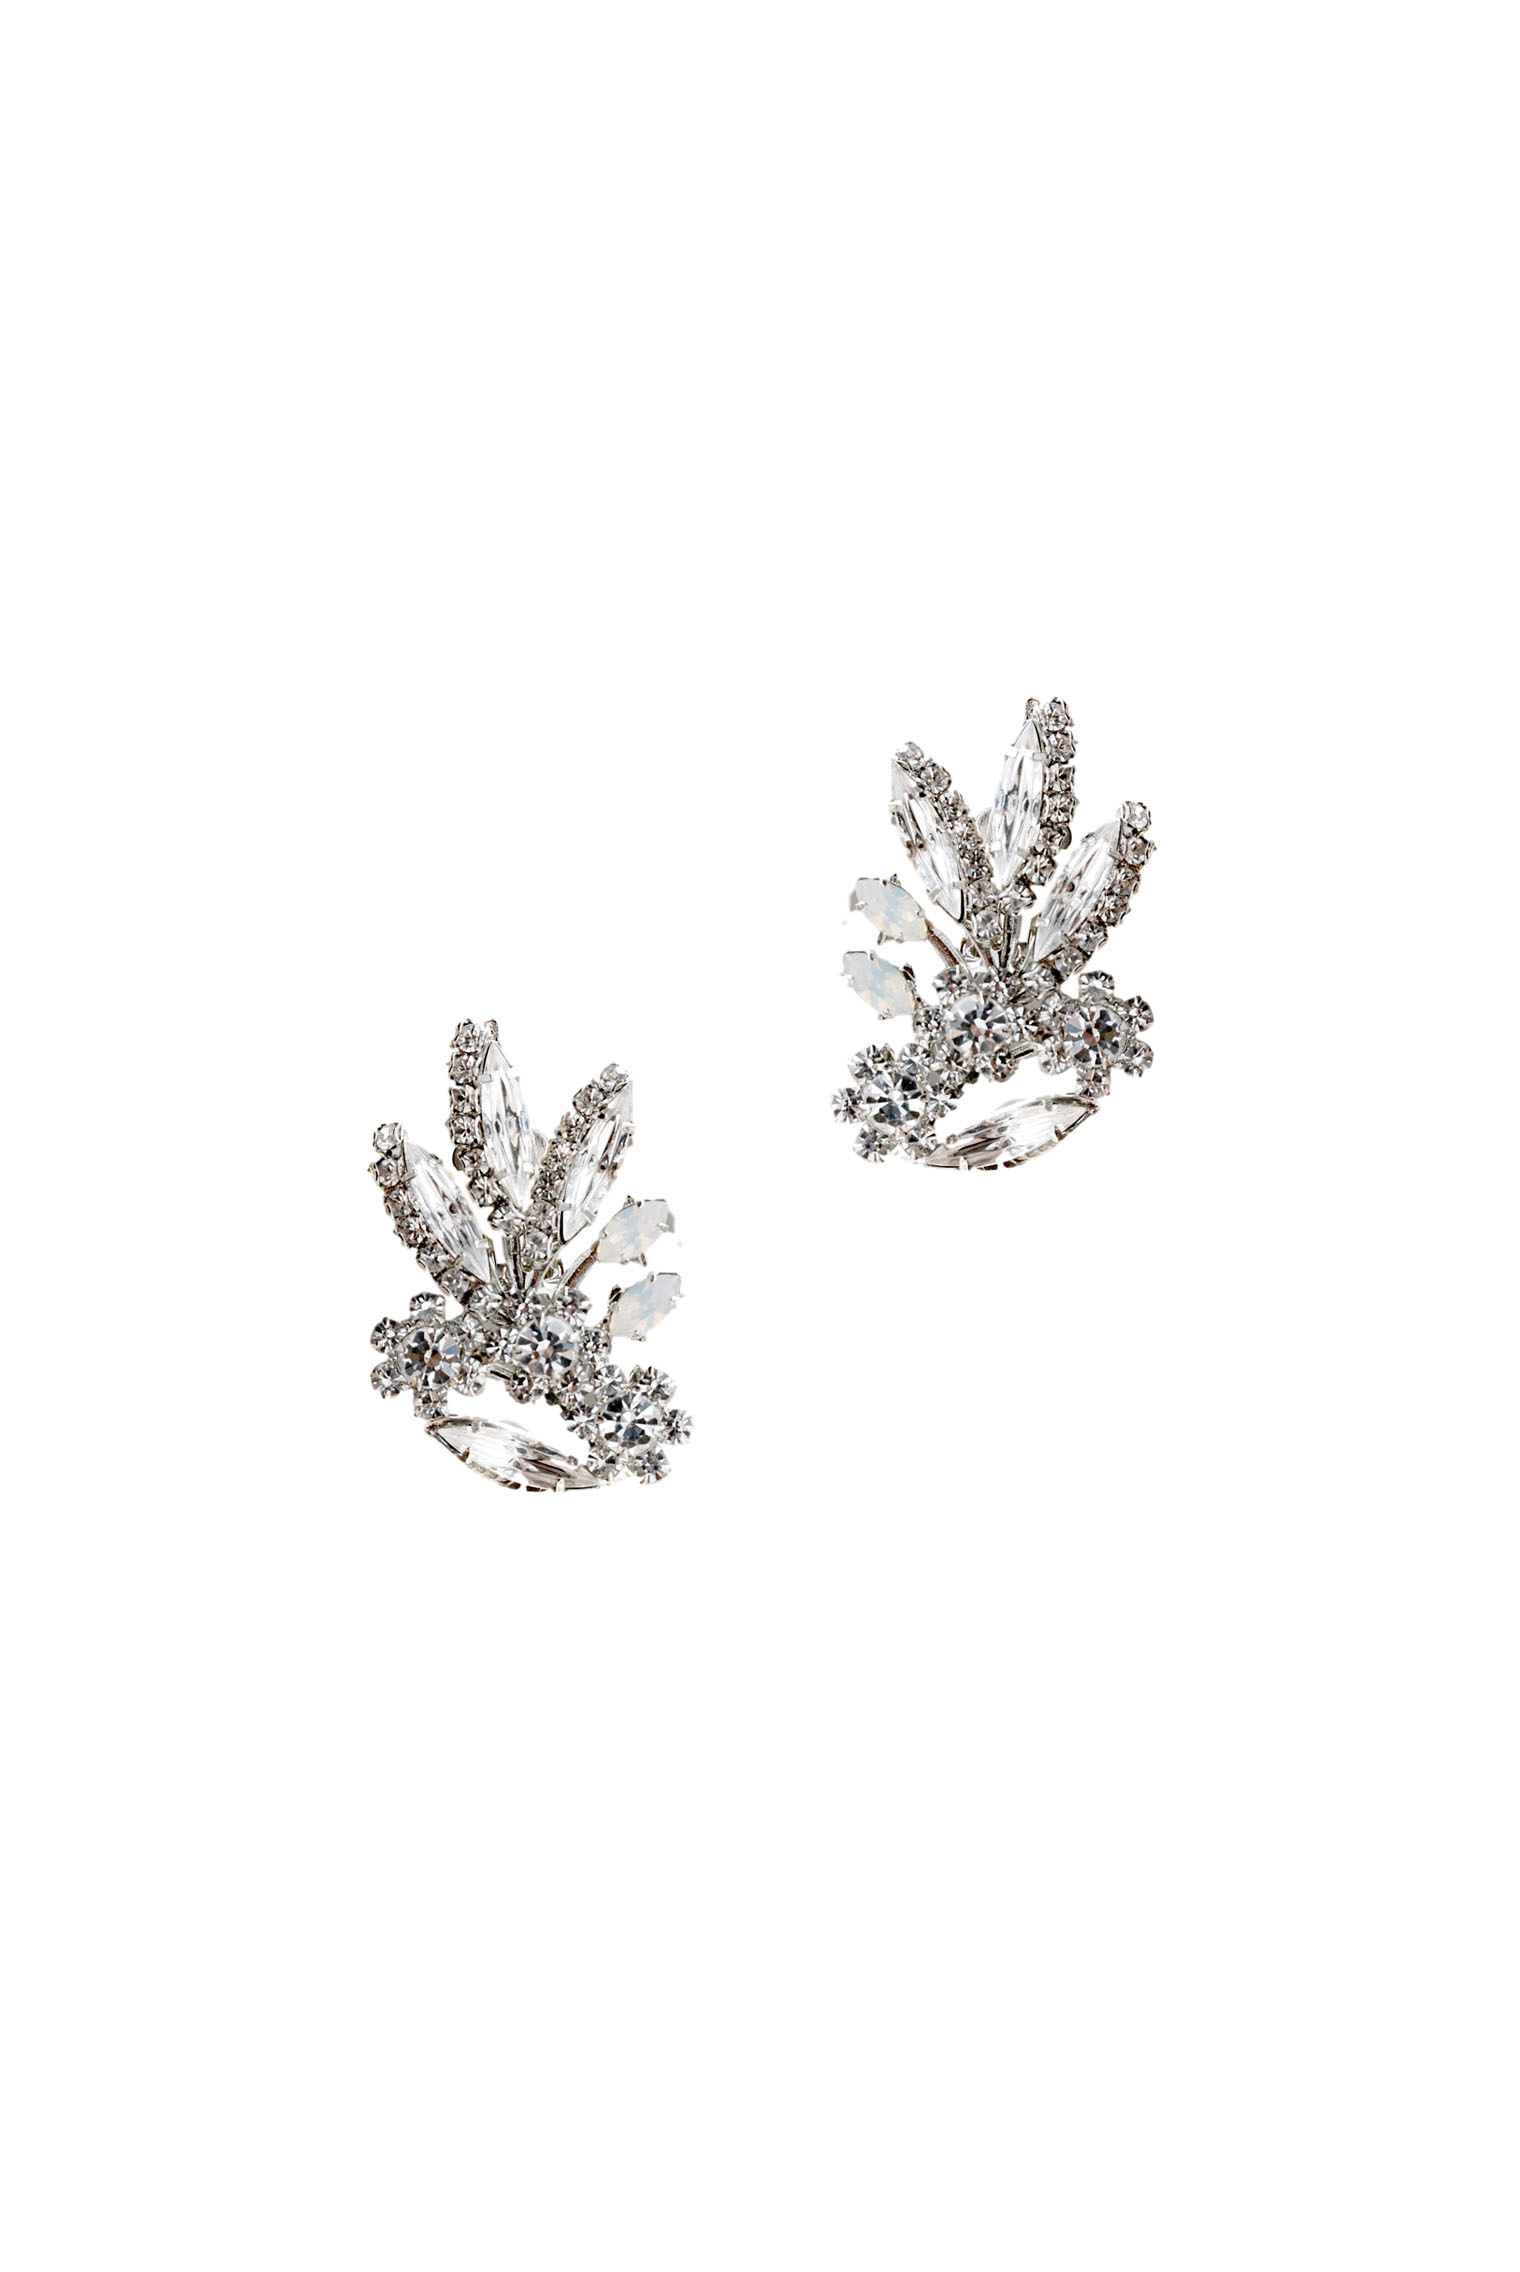 [RENTAL][JB Original Caprice Earrings]by Ti Adoro Jewelry